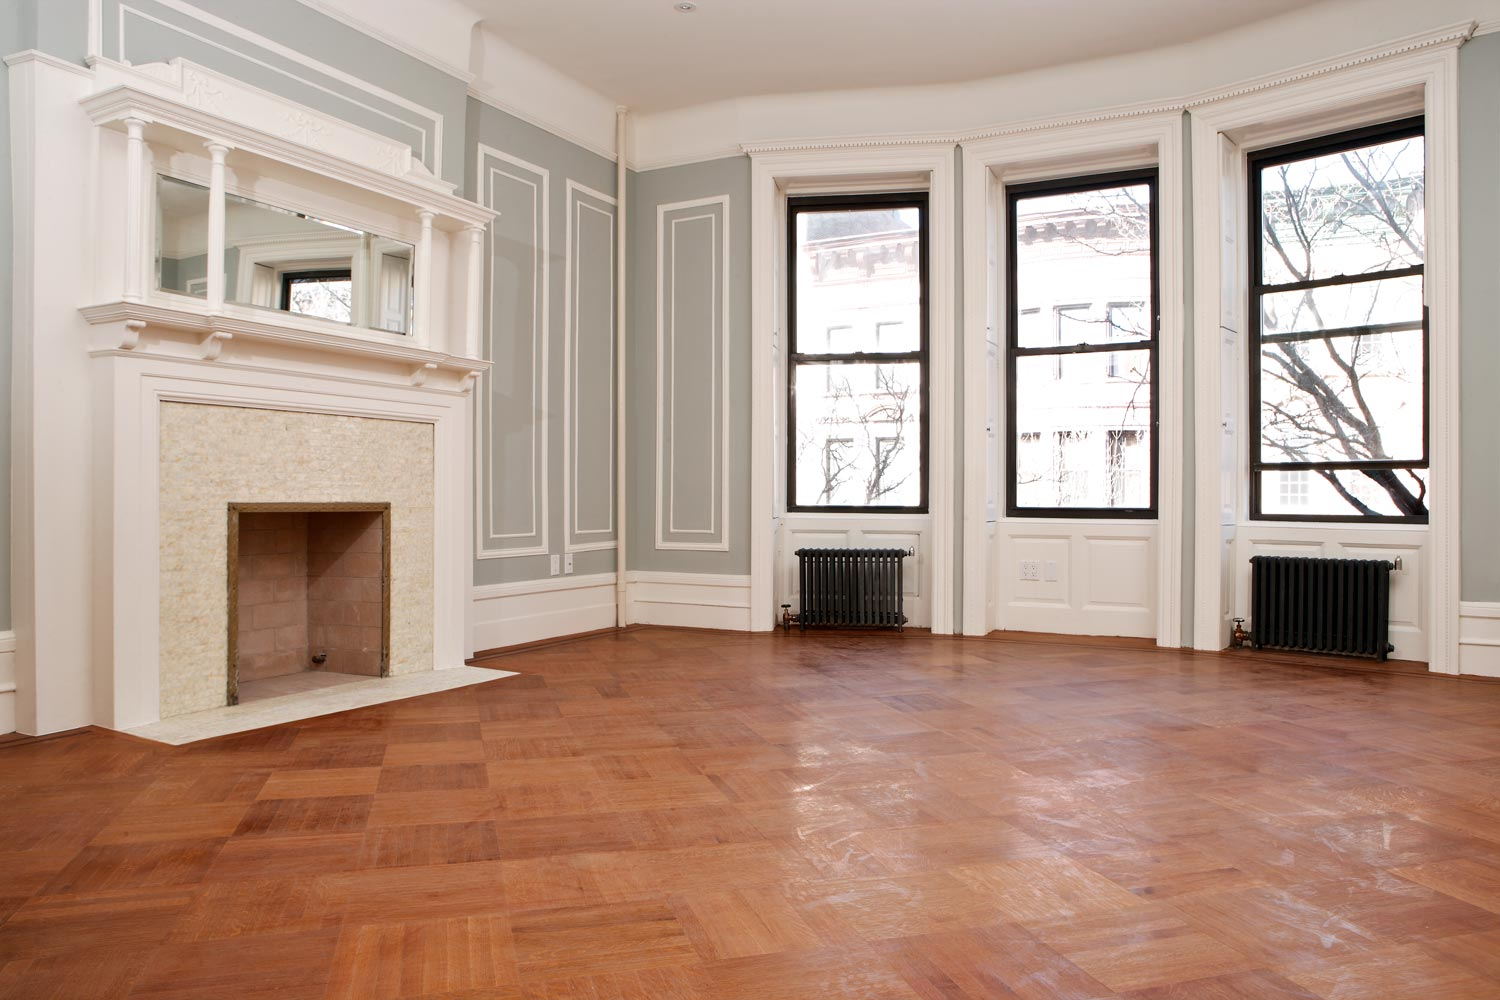 Details were meticulously restored to their original condition at this Historic Brownstone in Harlem